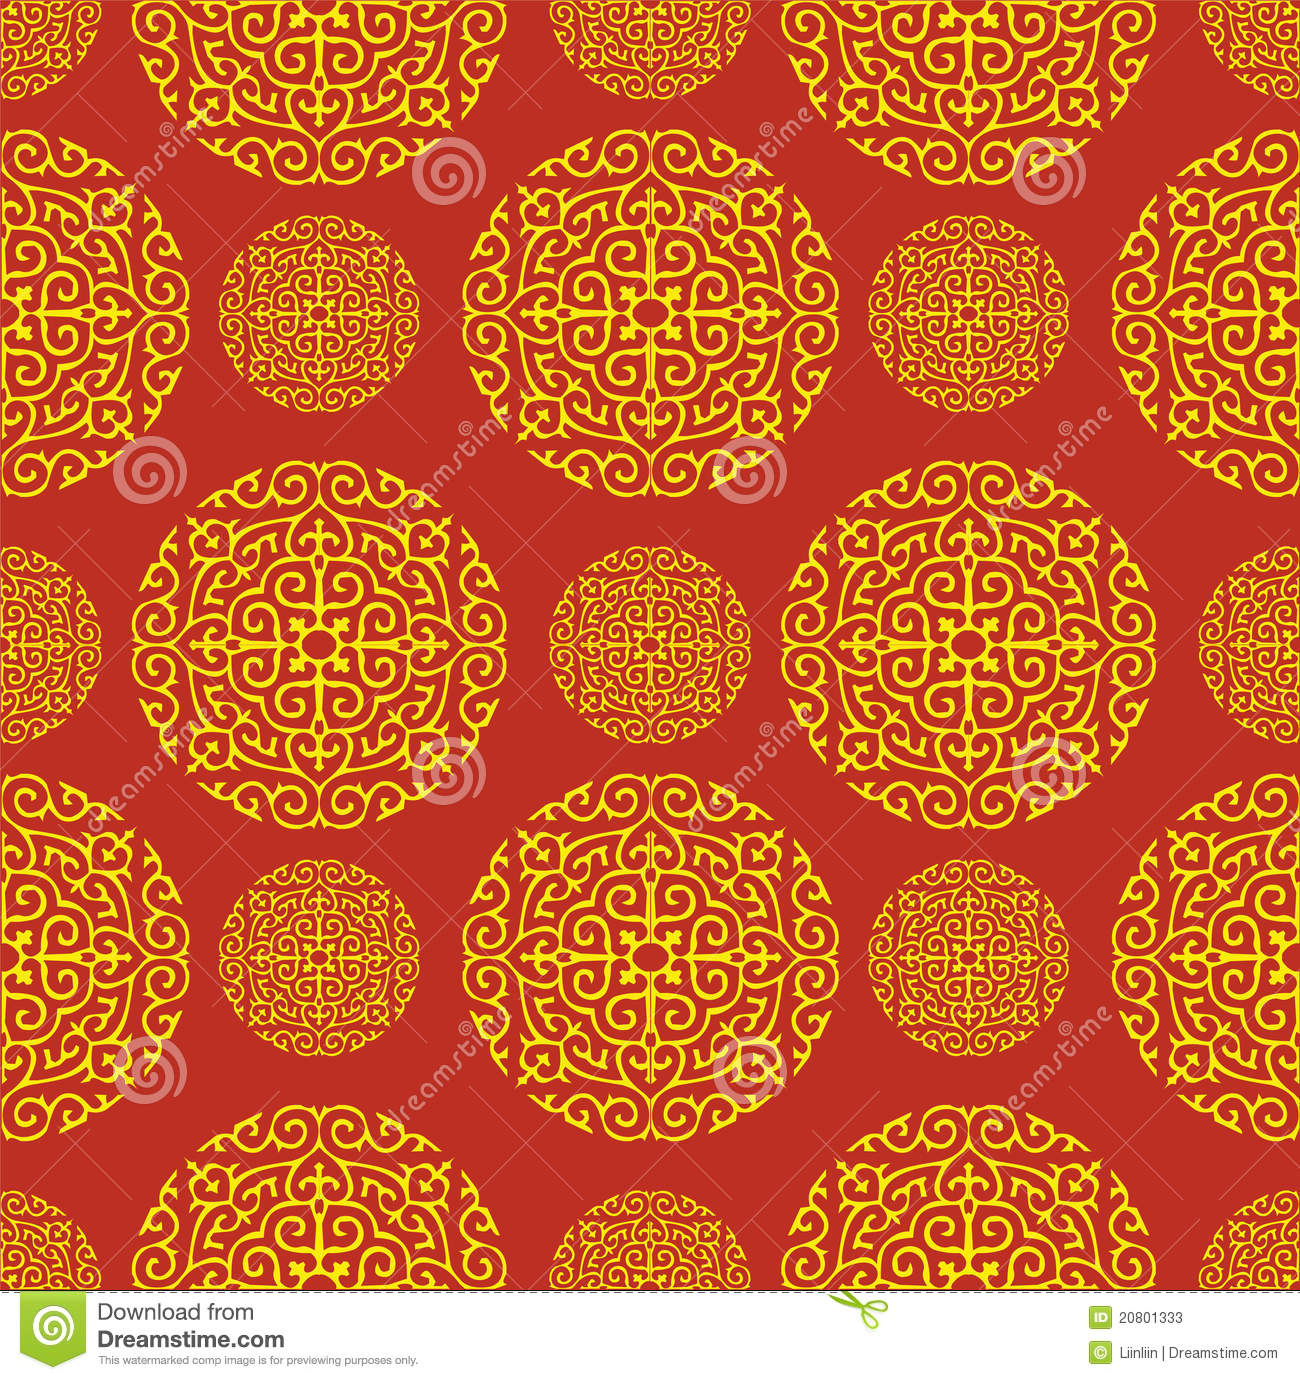 Red Chinese Pattern Background Stock Vector - Image: 20801333 | 1300 x 1380 jpeg 574kB